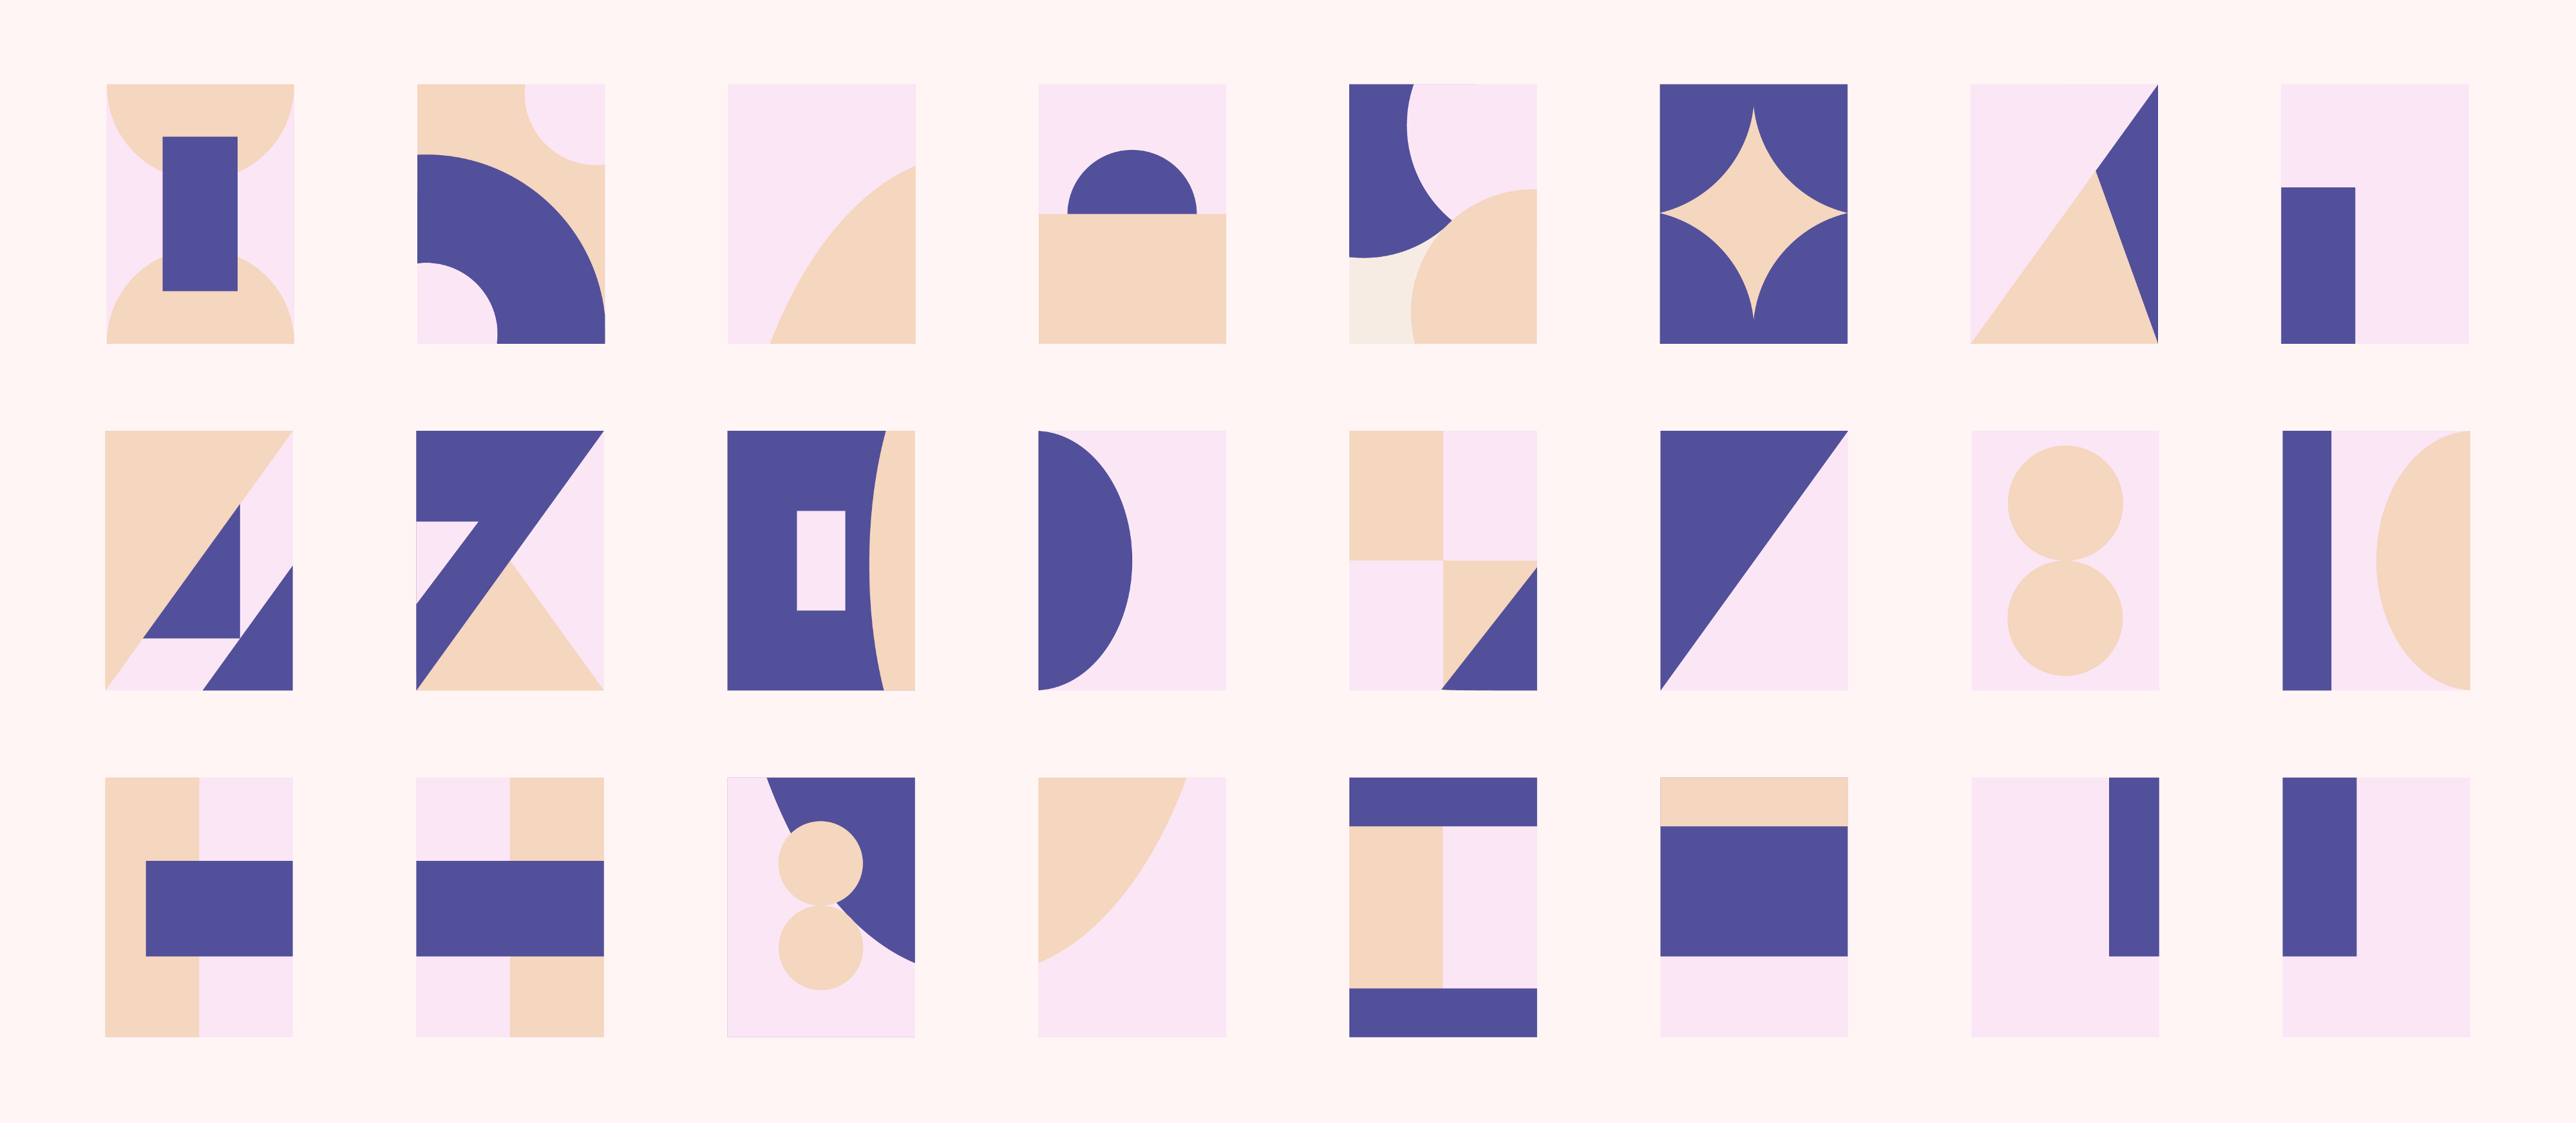 Set of rectangles with abstract shapes in navy, peach and pink. Individually, they look like book covers. As a set, like 2021